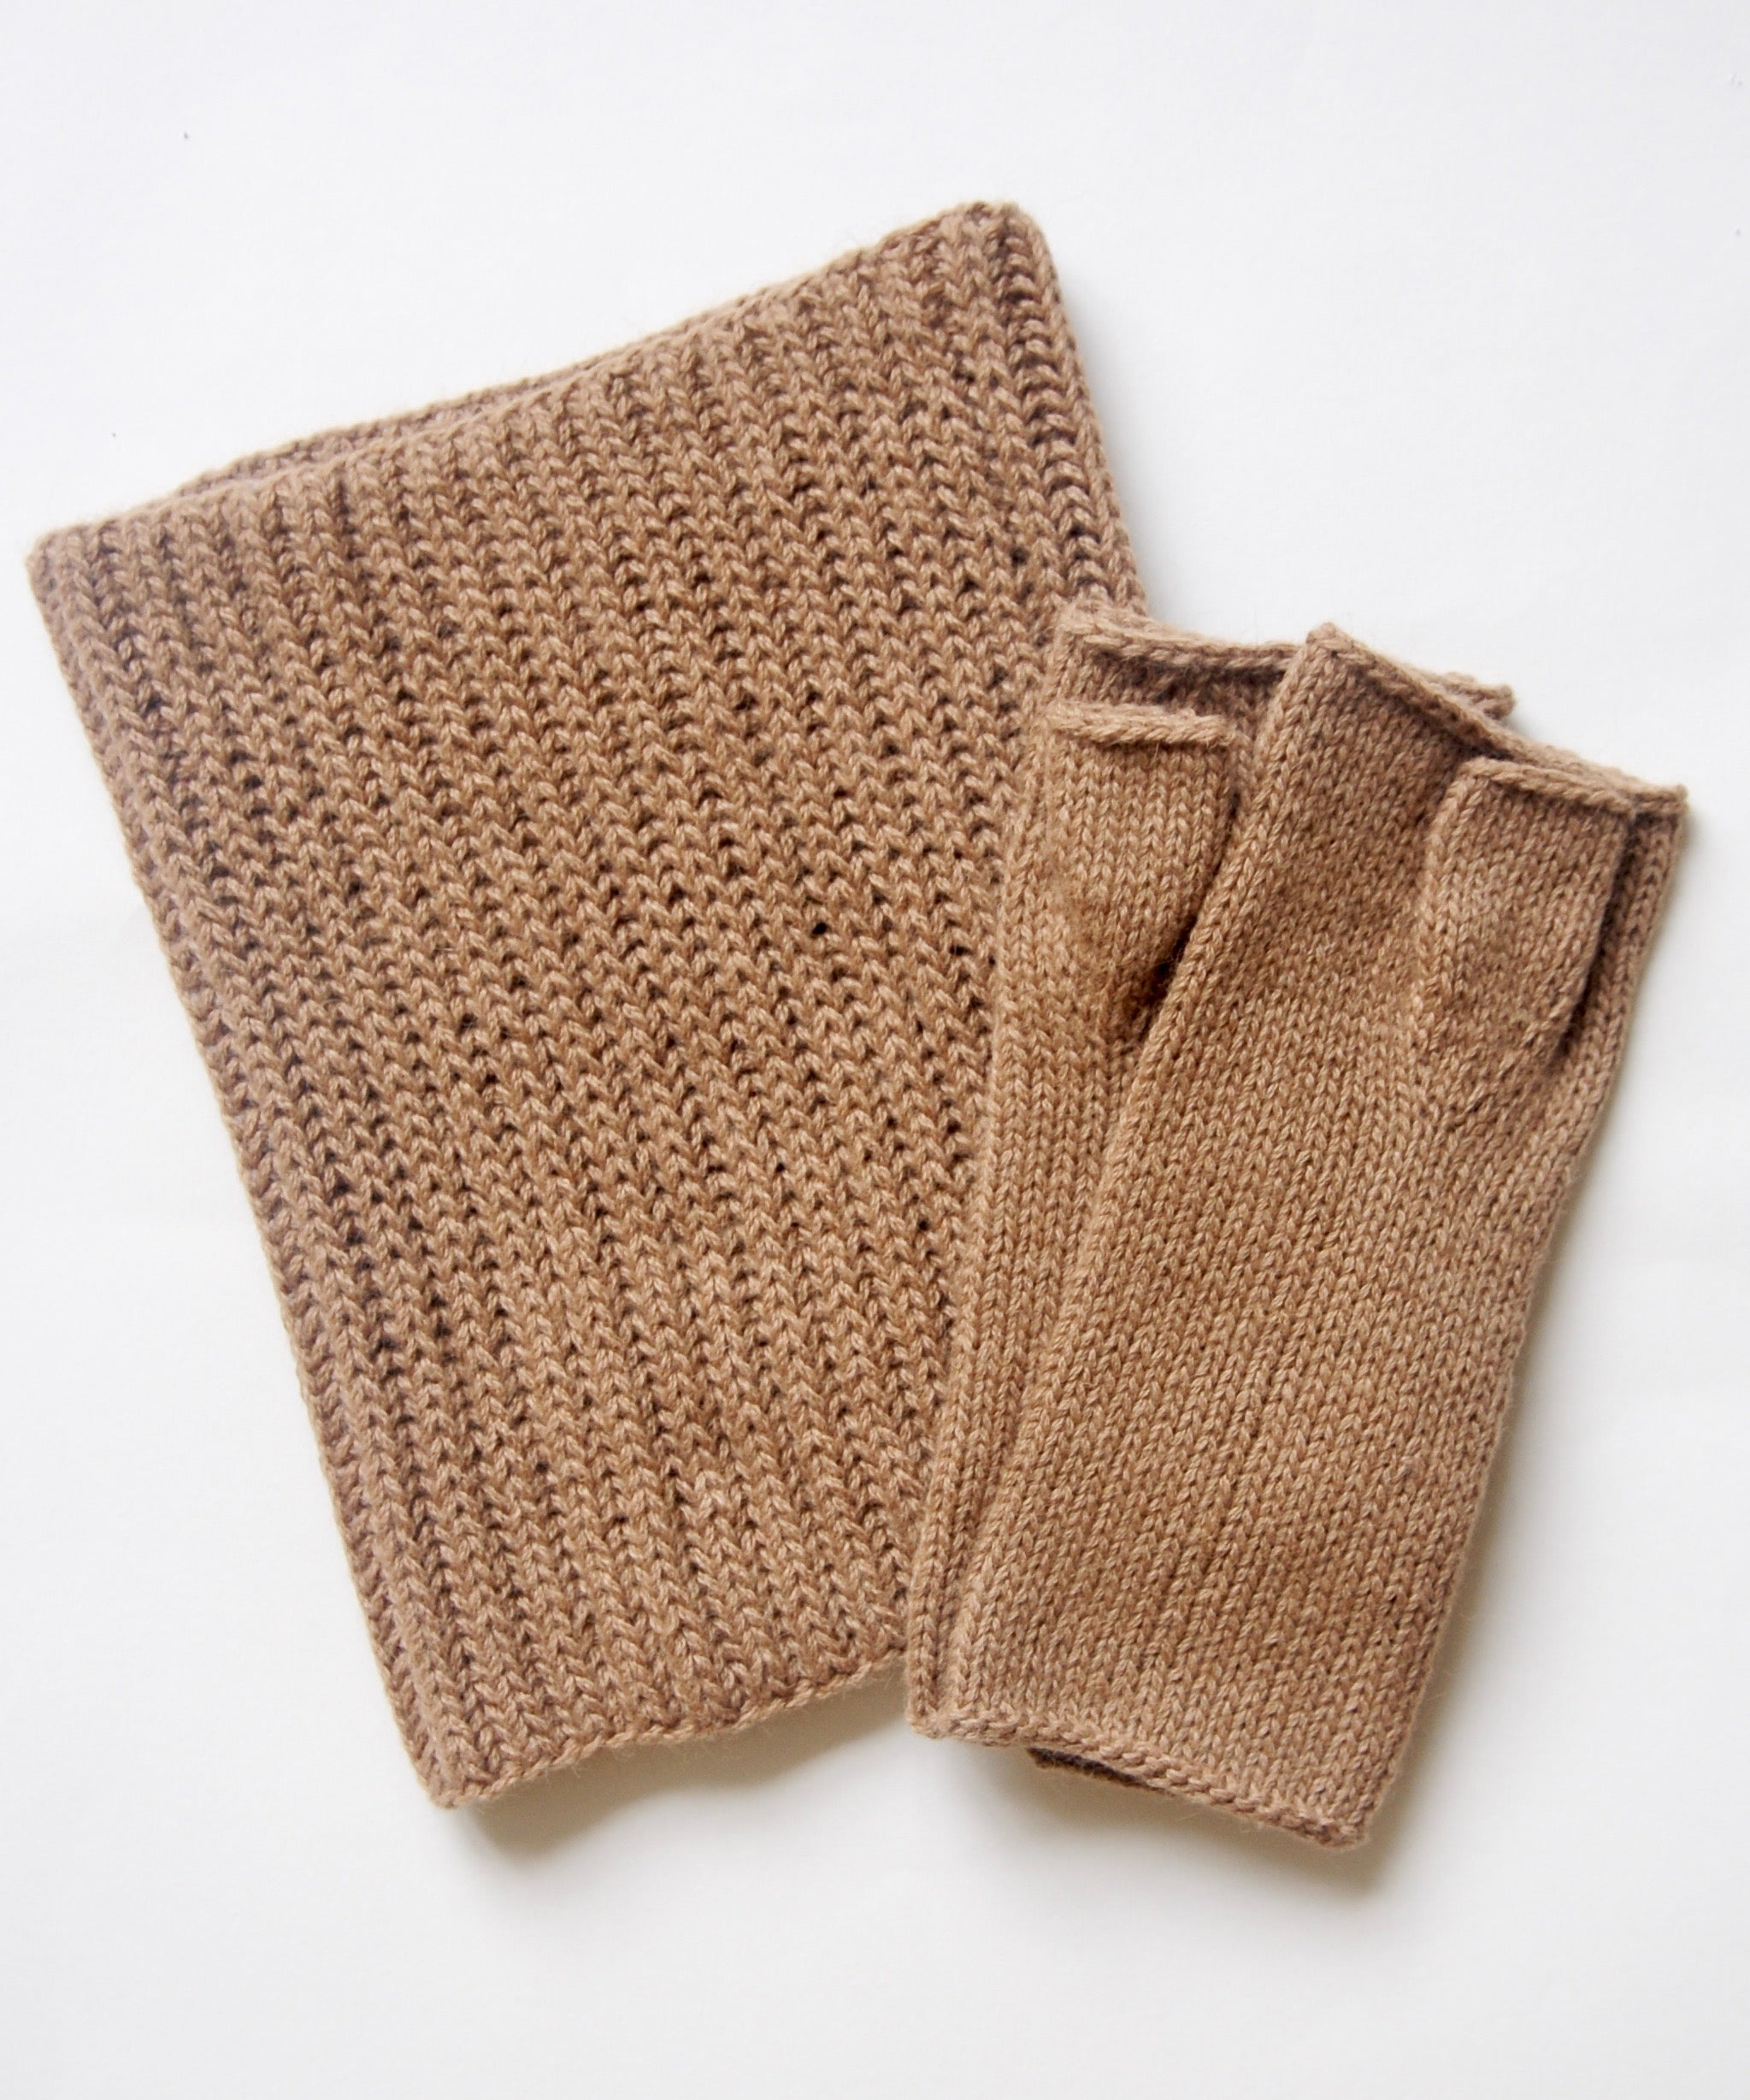 Camel-knitwear-made-in-the-uk-fishermans-scarf-fingerless-gloves